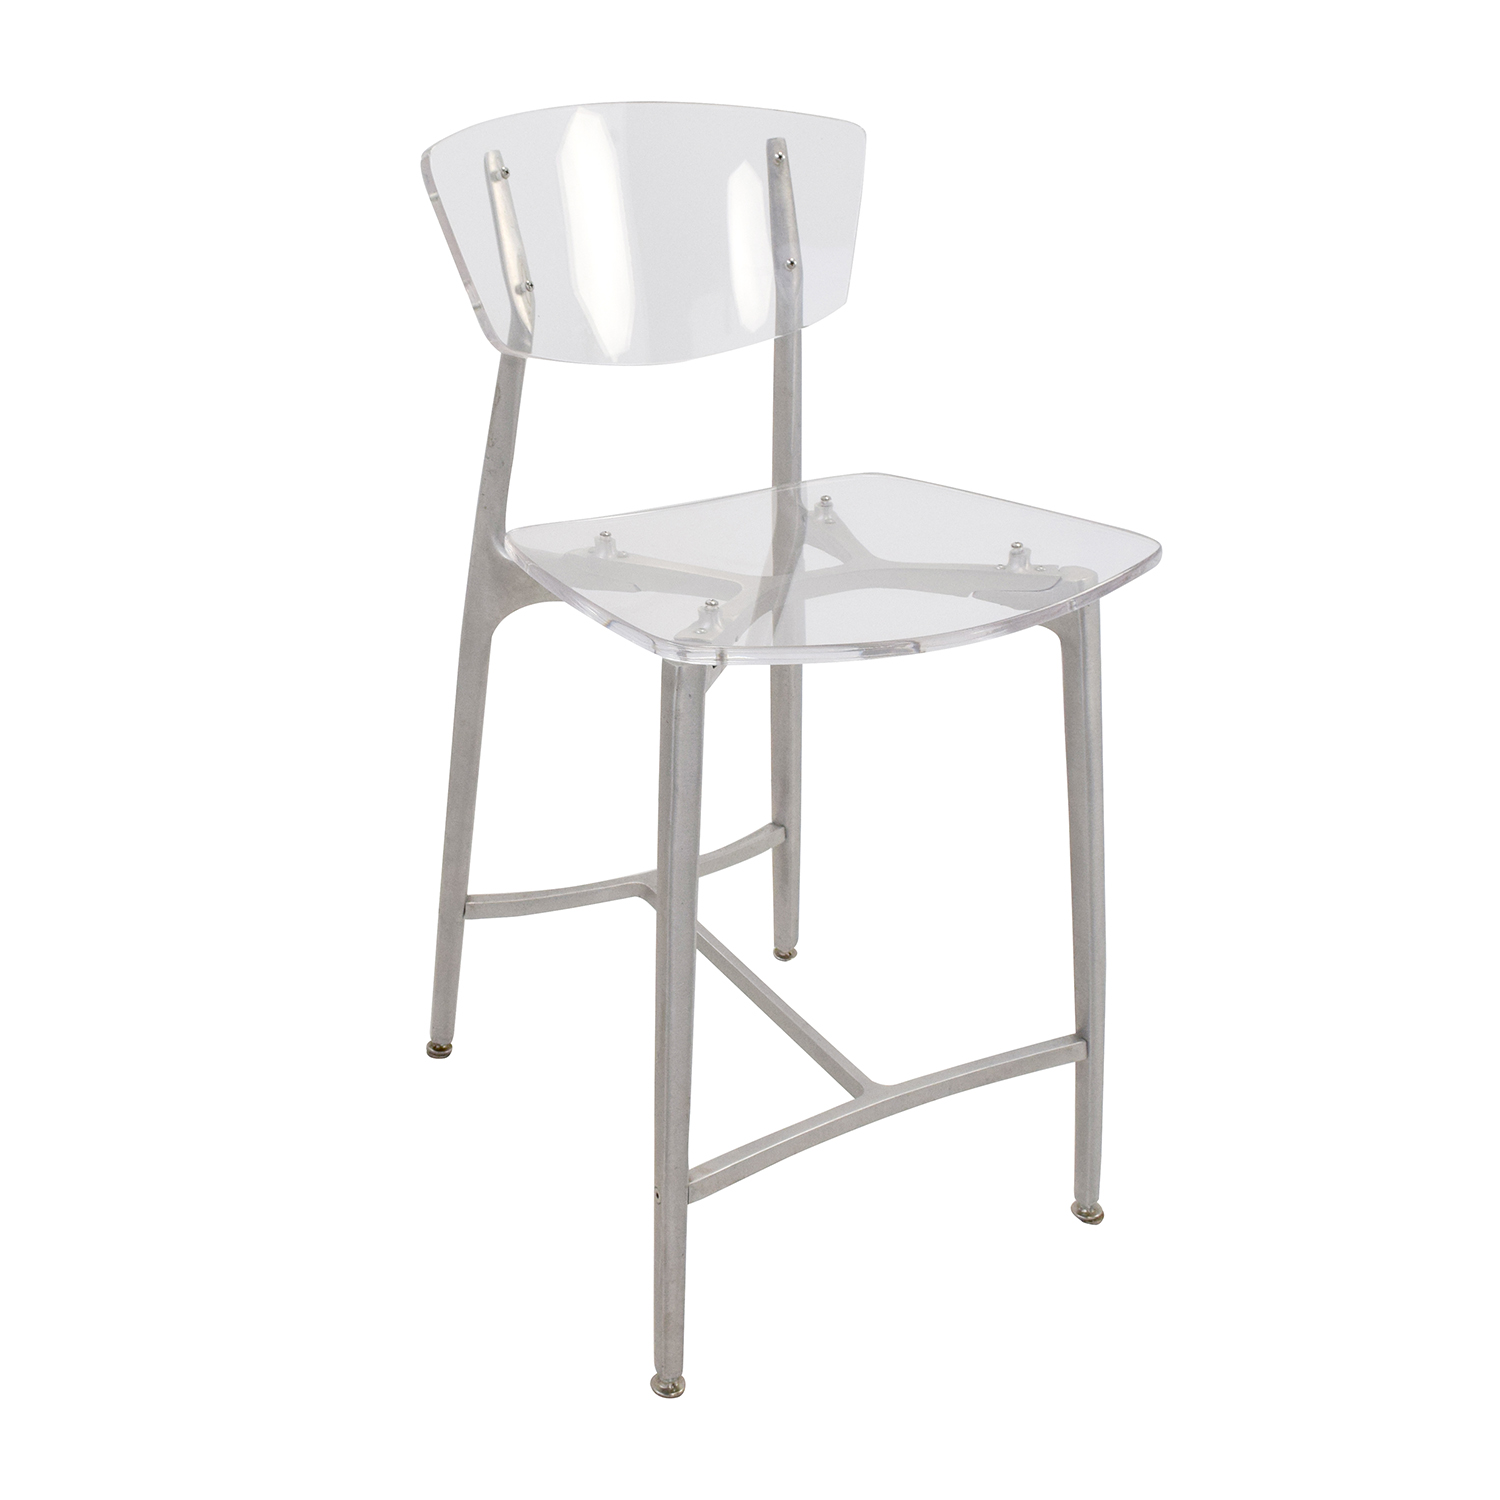 dining tables and chairs for sale in laguna. sale; laguna beach artist counter glass dining set / tables and chairs for sale in n